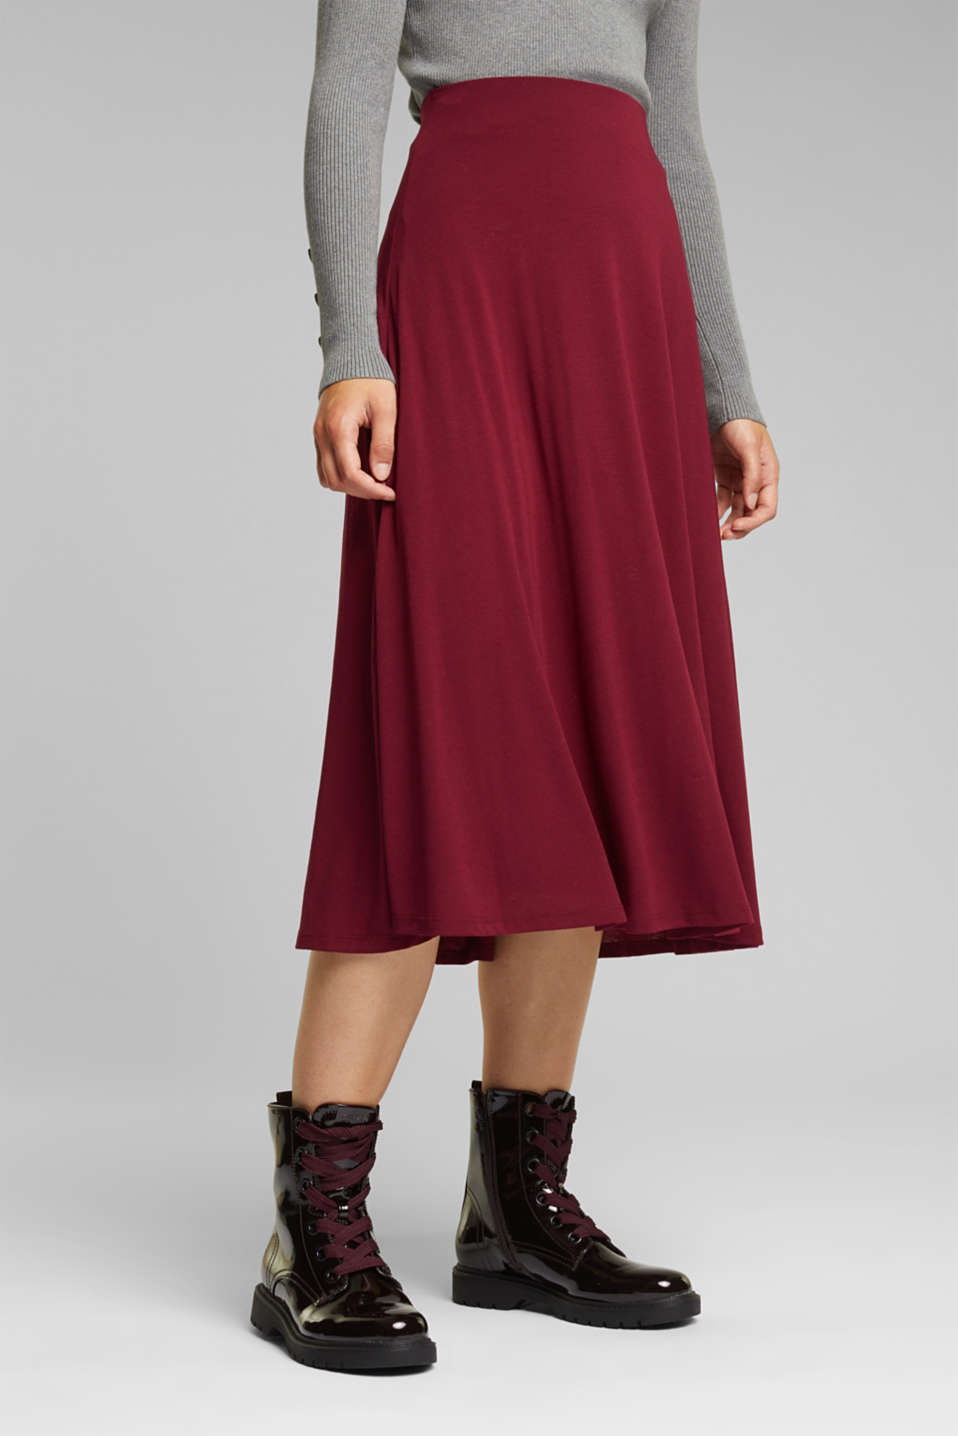 Esprit - Flowing, midi length jersey skirt